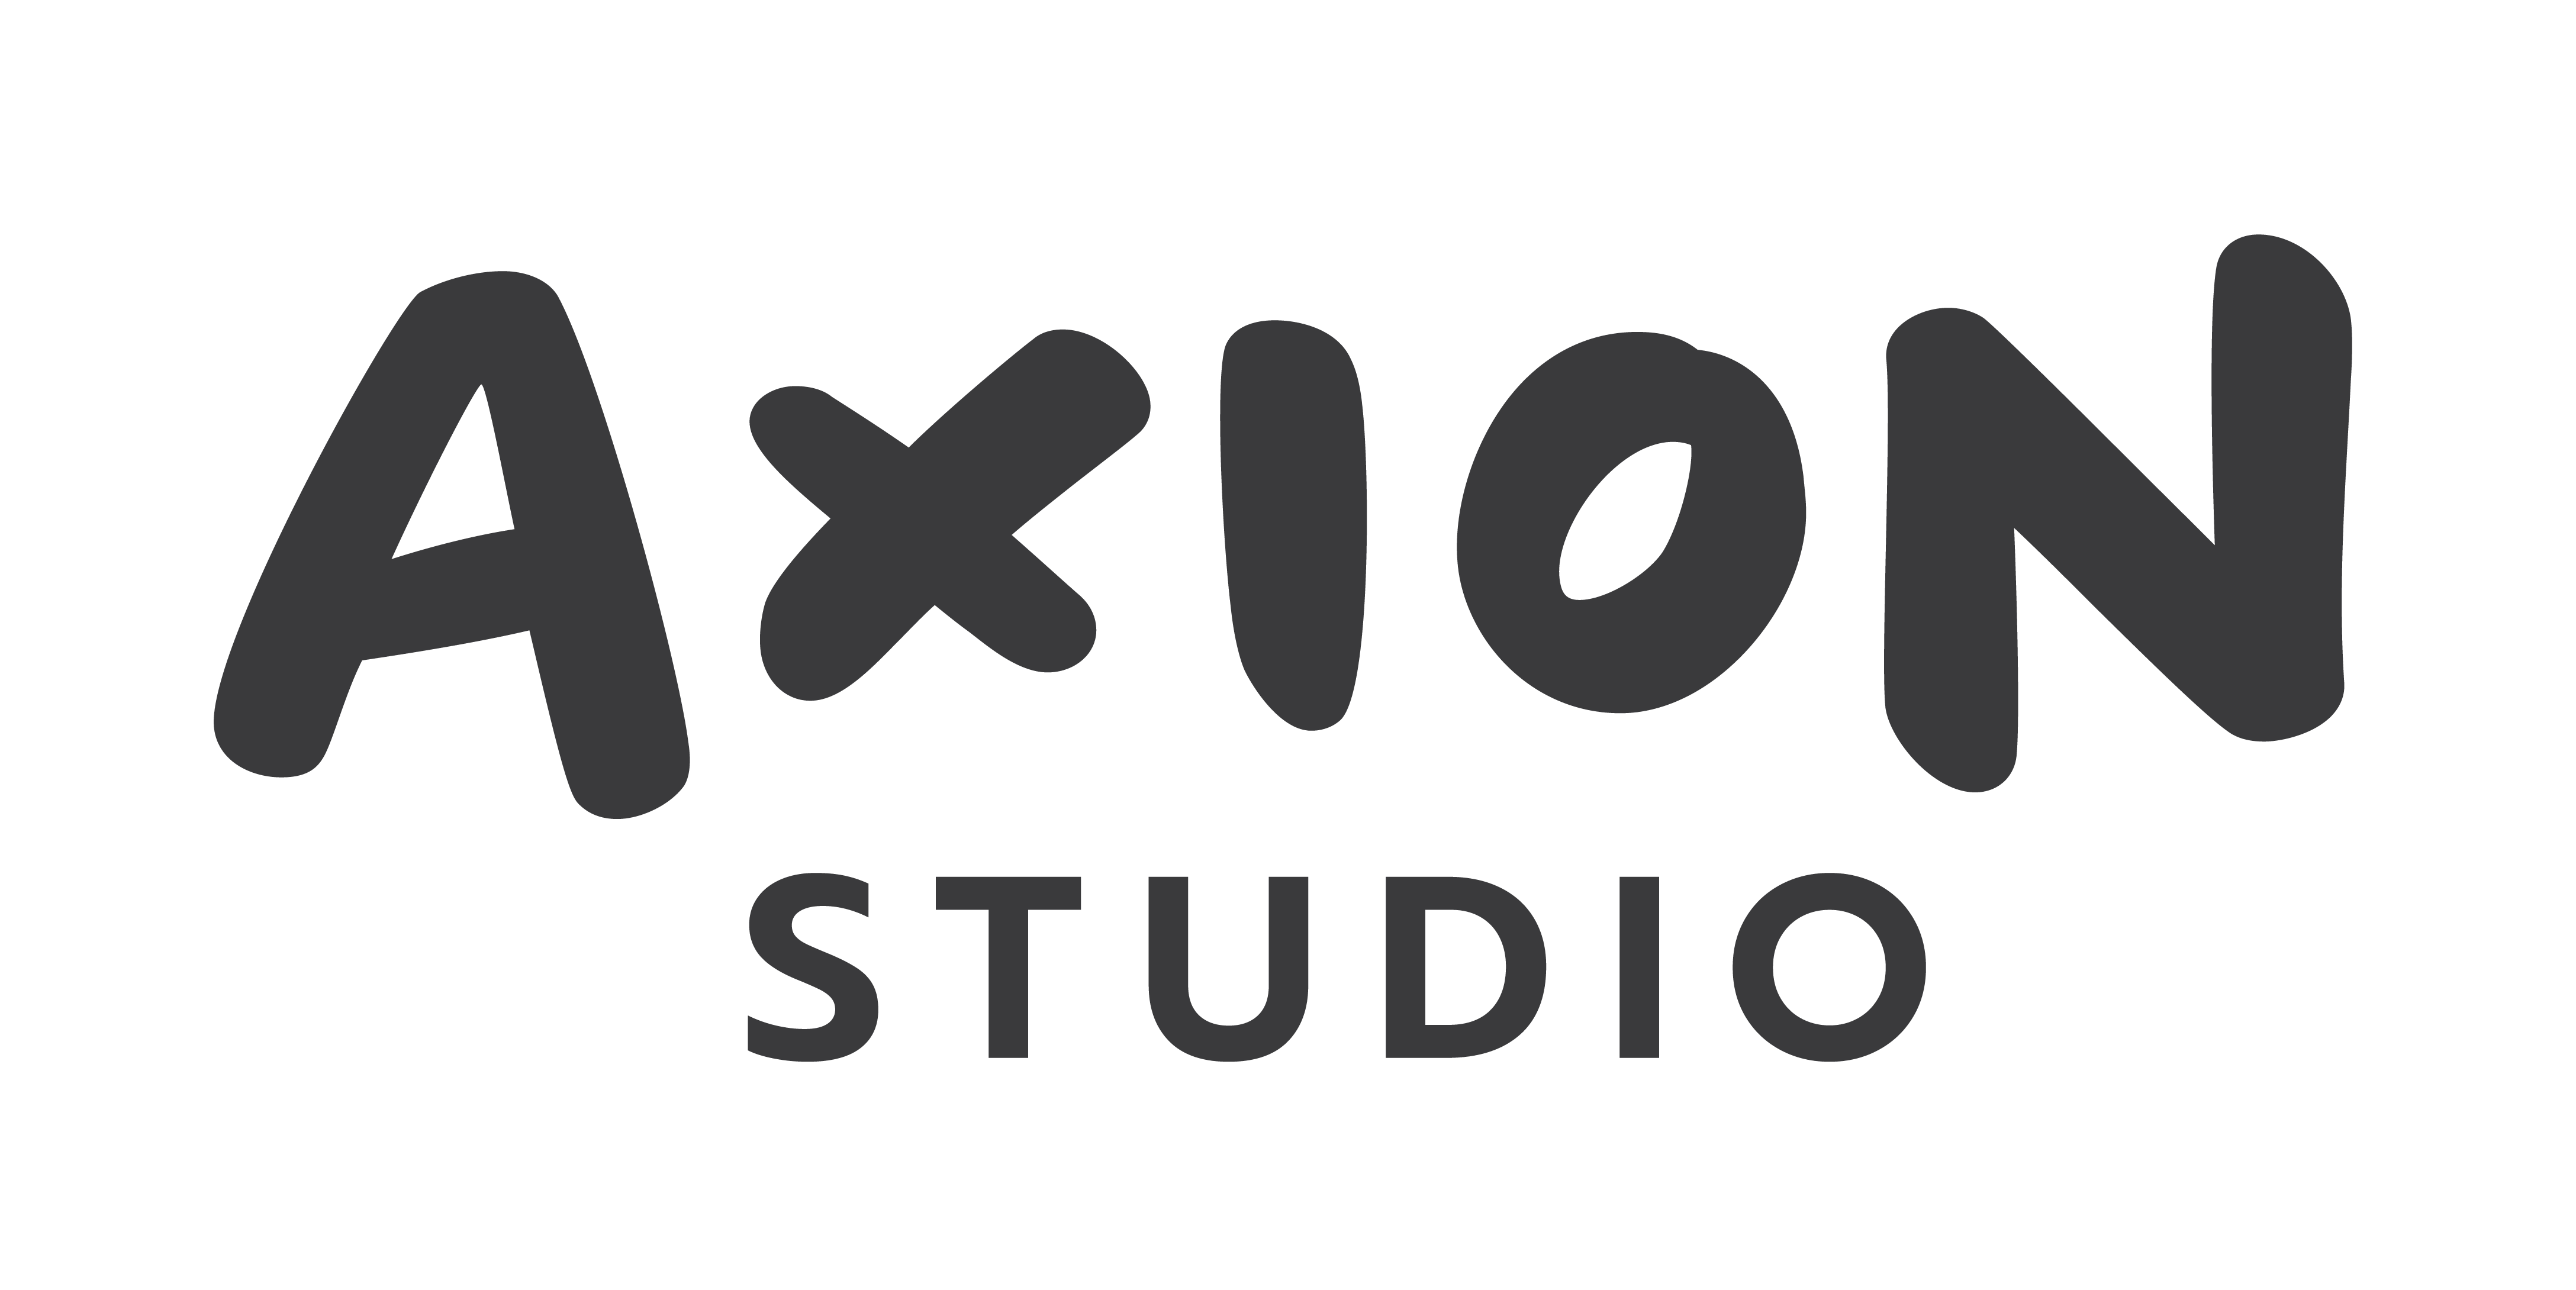 Carado Axion Studio